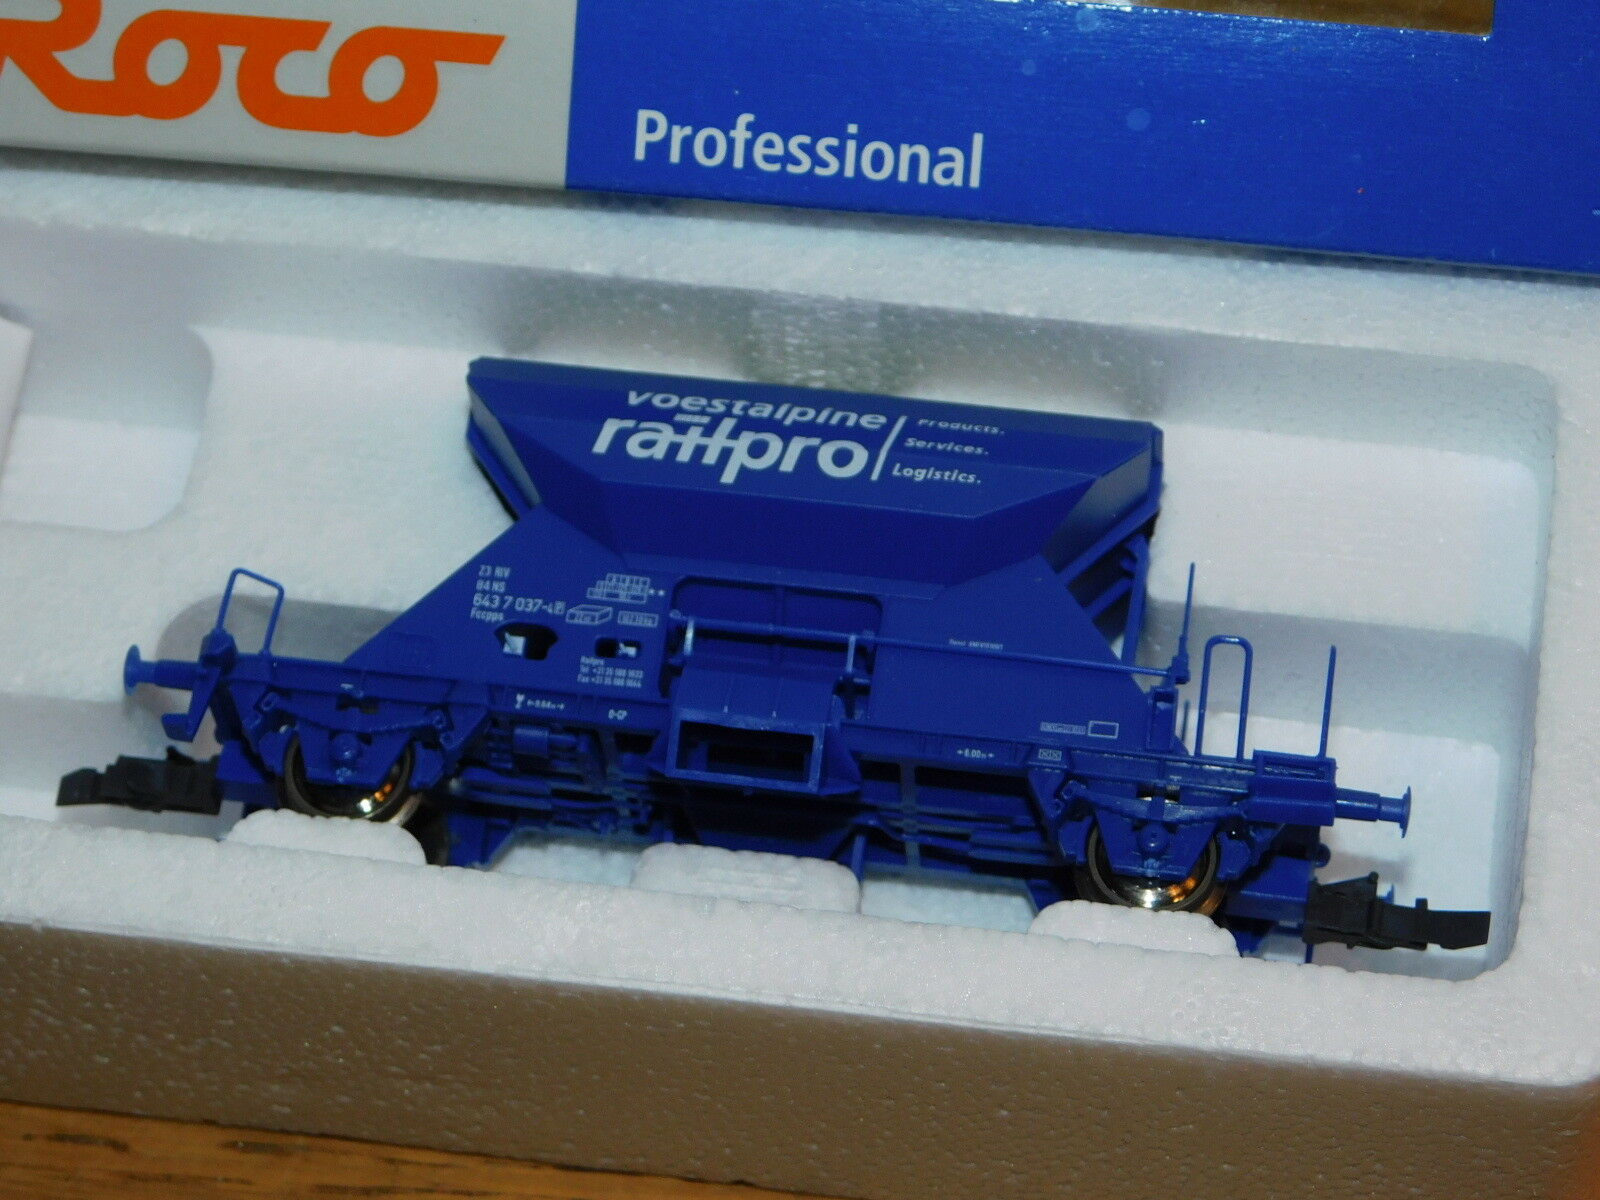 ROCO 47531 H0-NS WAGON Ballast marchandise VOESTALPINE RAILPRO Dutch 643-7-037-4